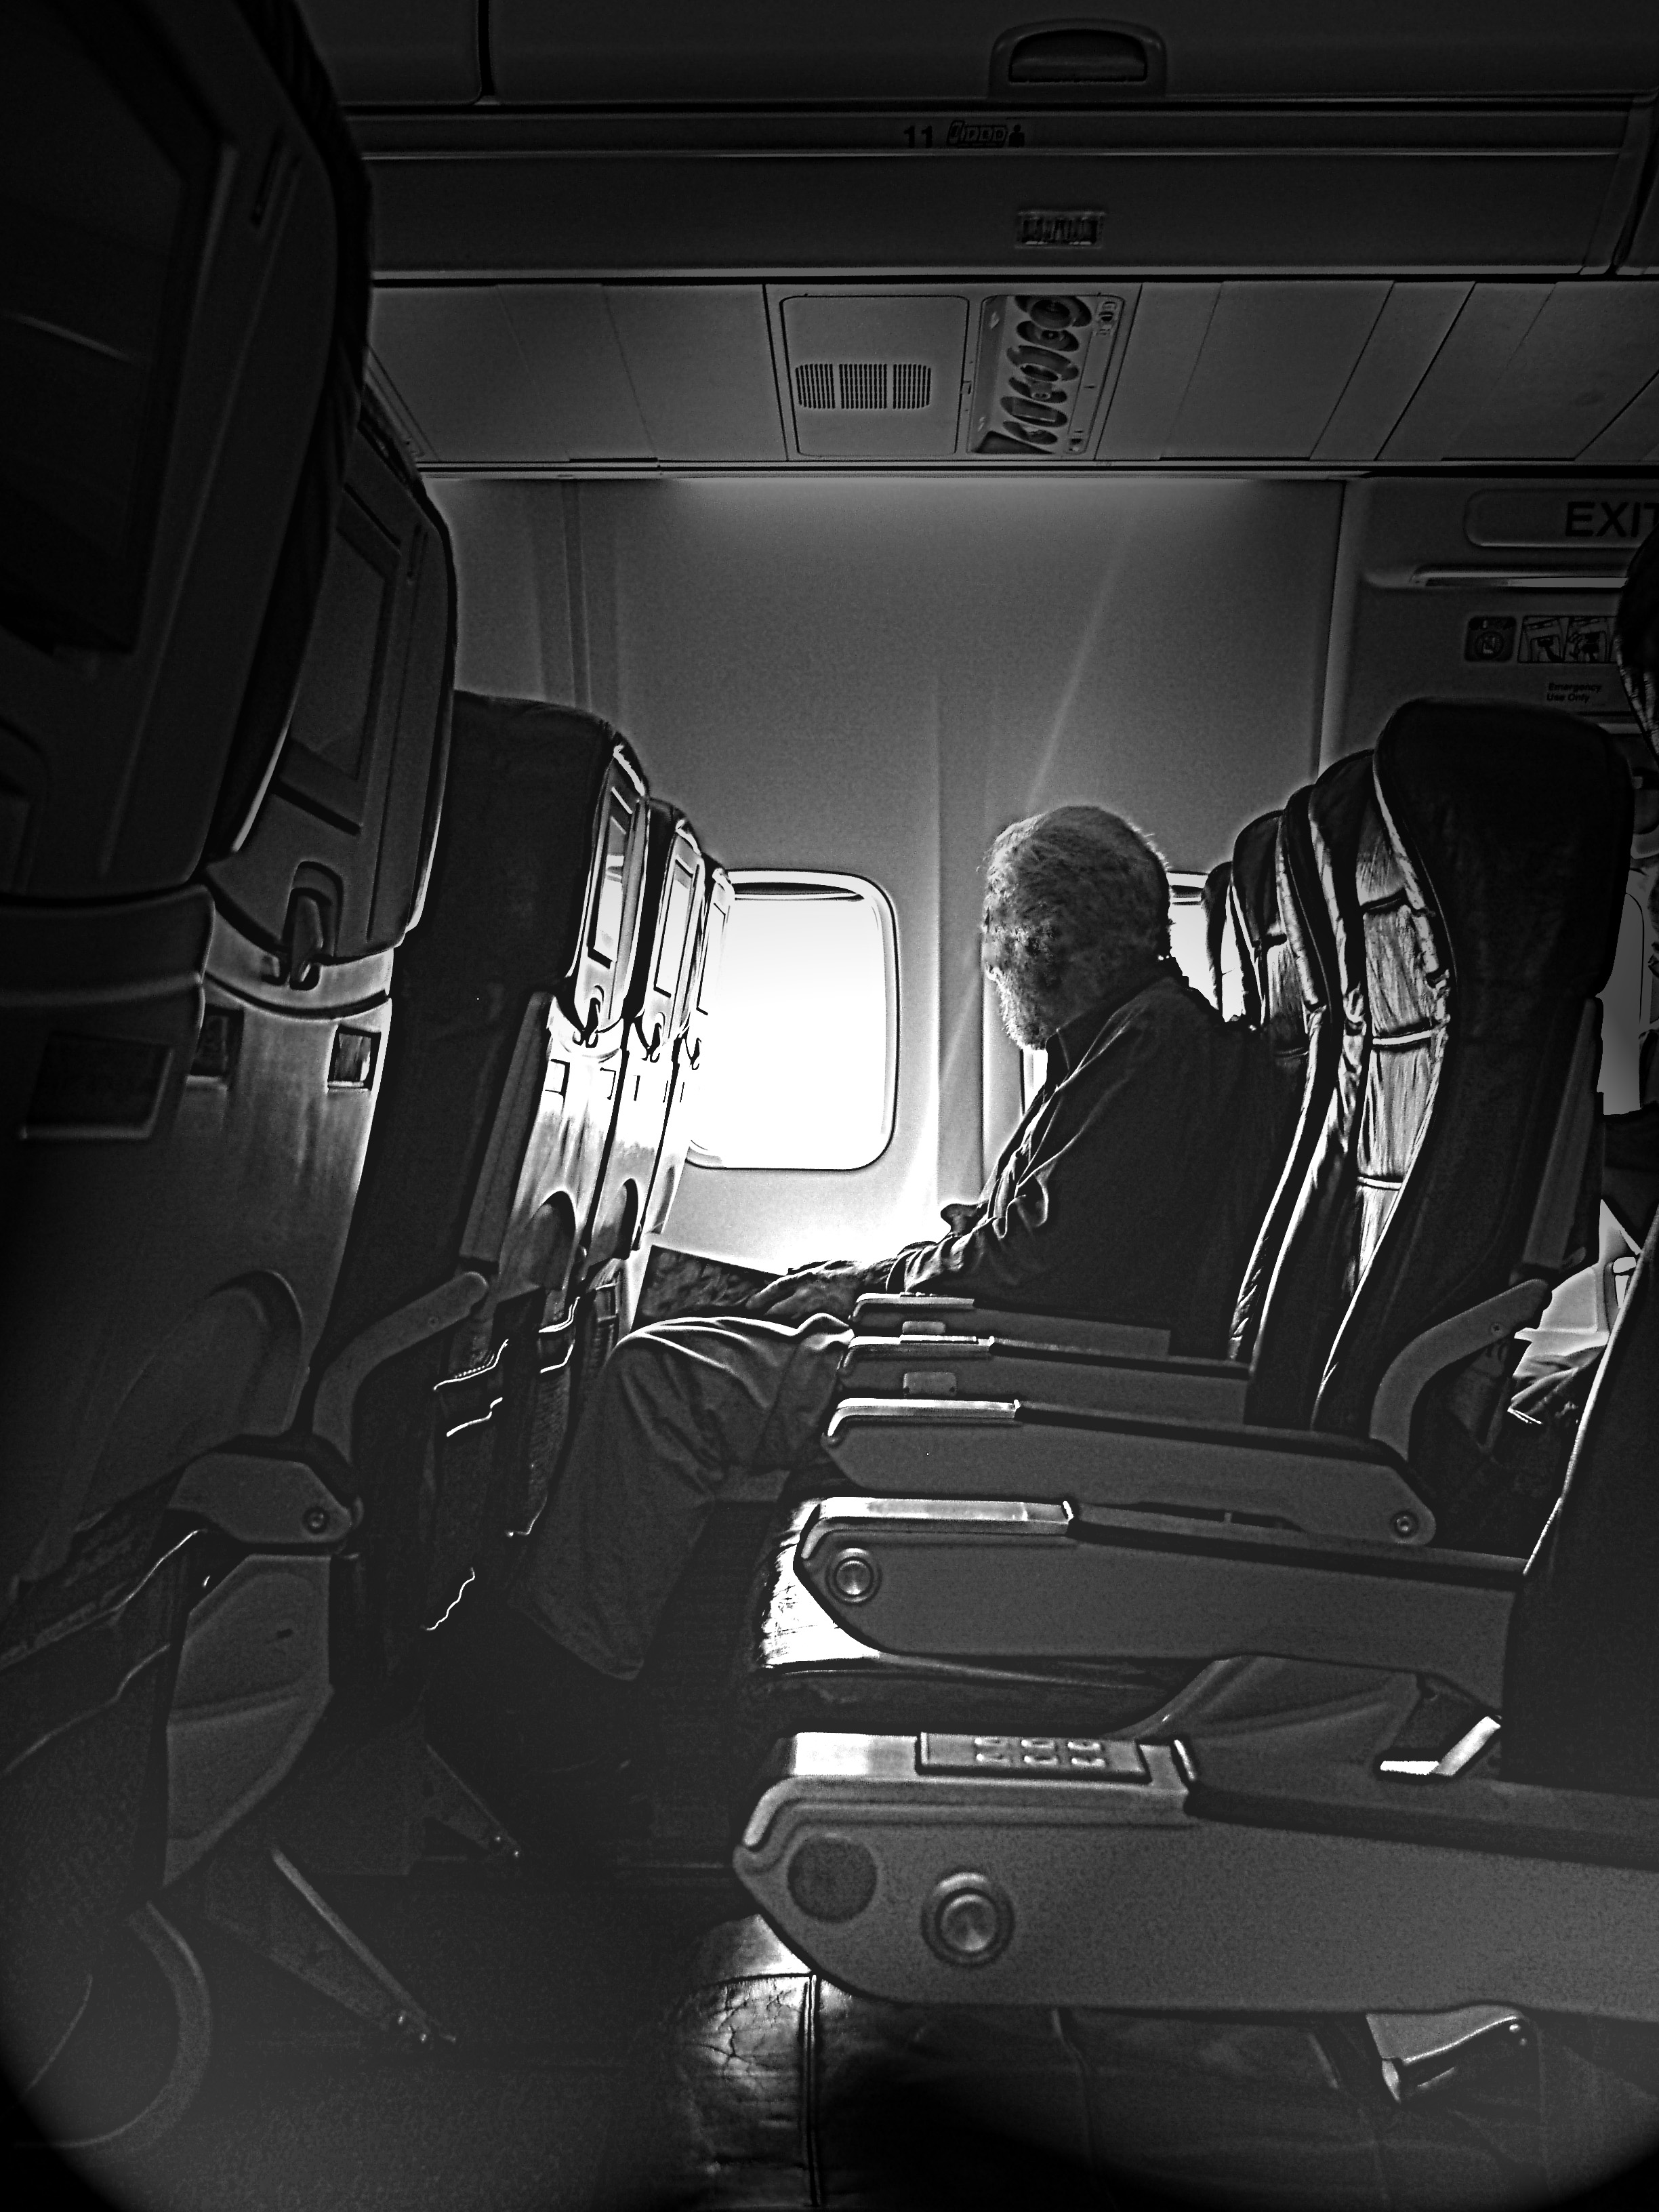 aircraft interior high contrast grain